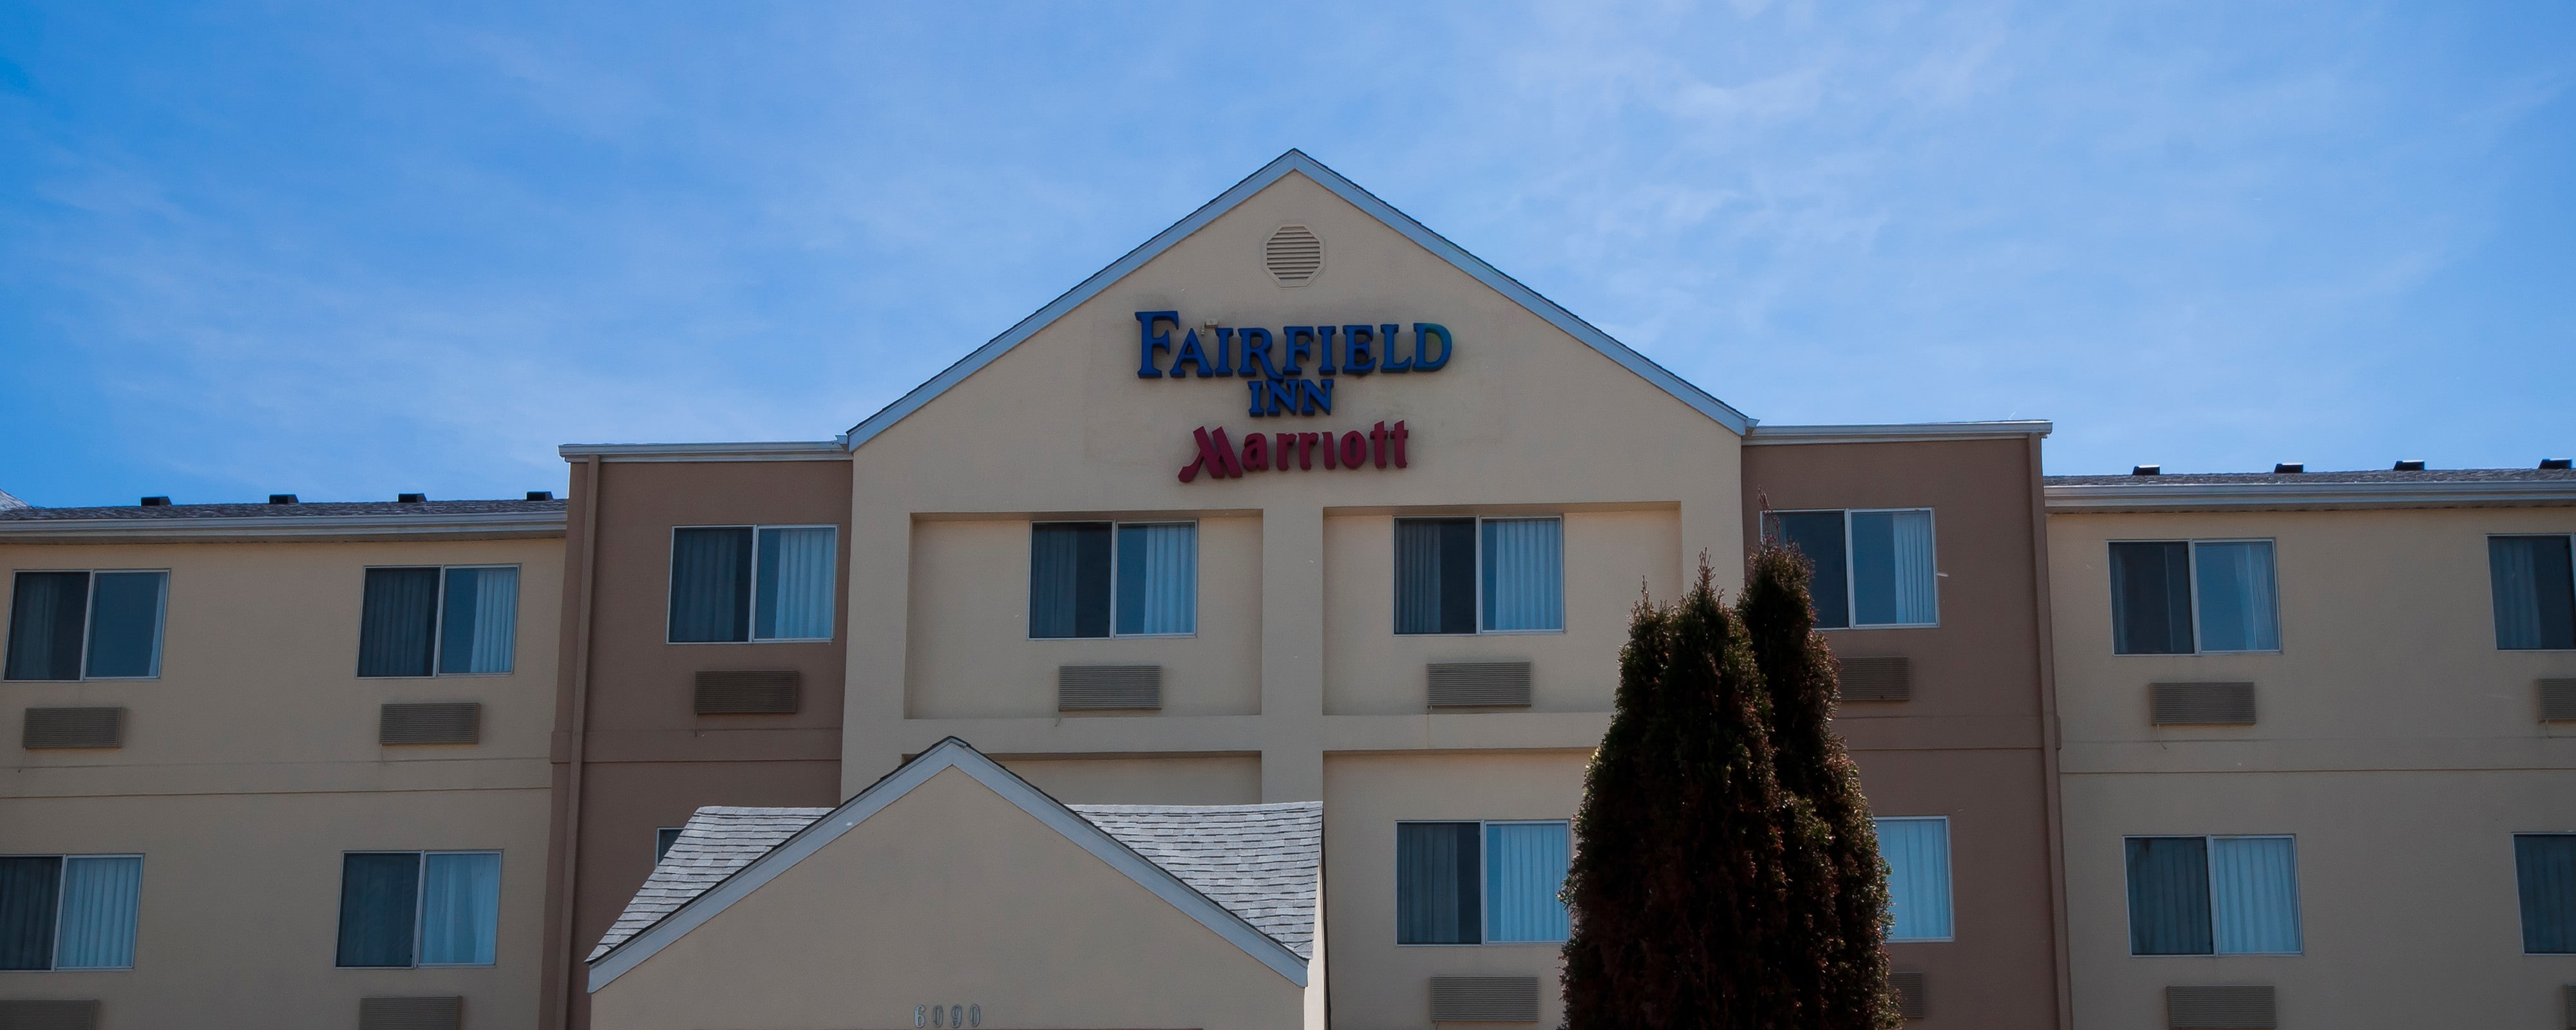 Fachada del hotel Fairfield Inn Chicago Gurnee, Illinois